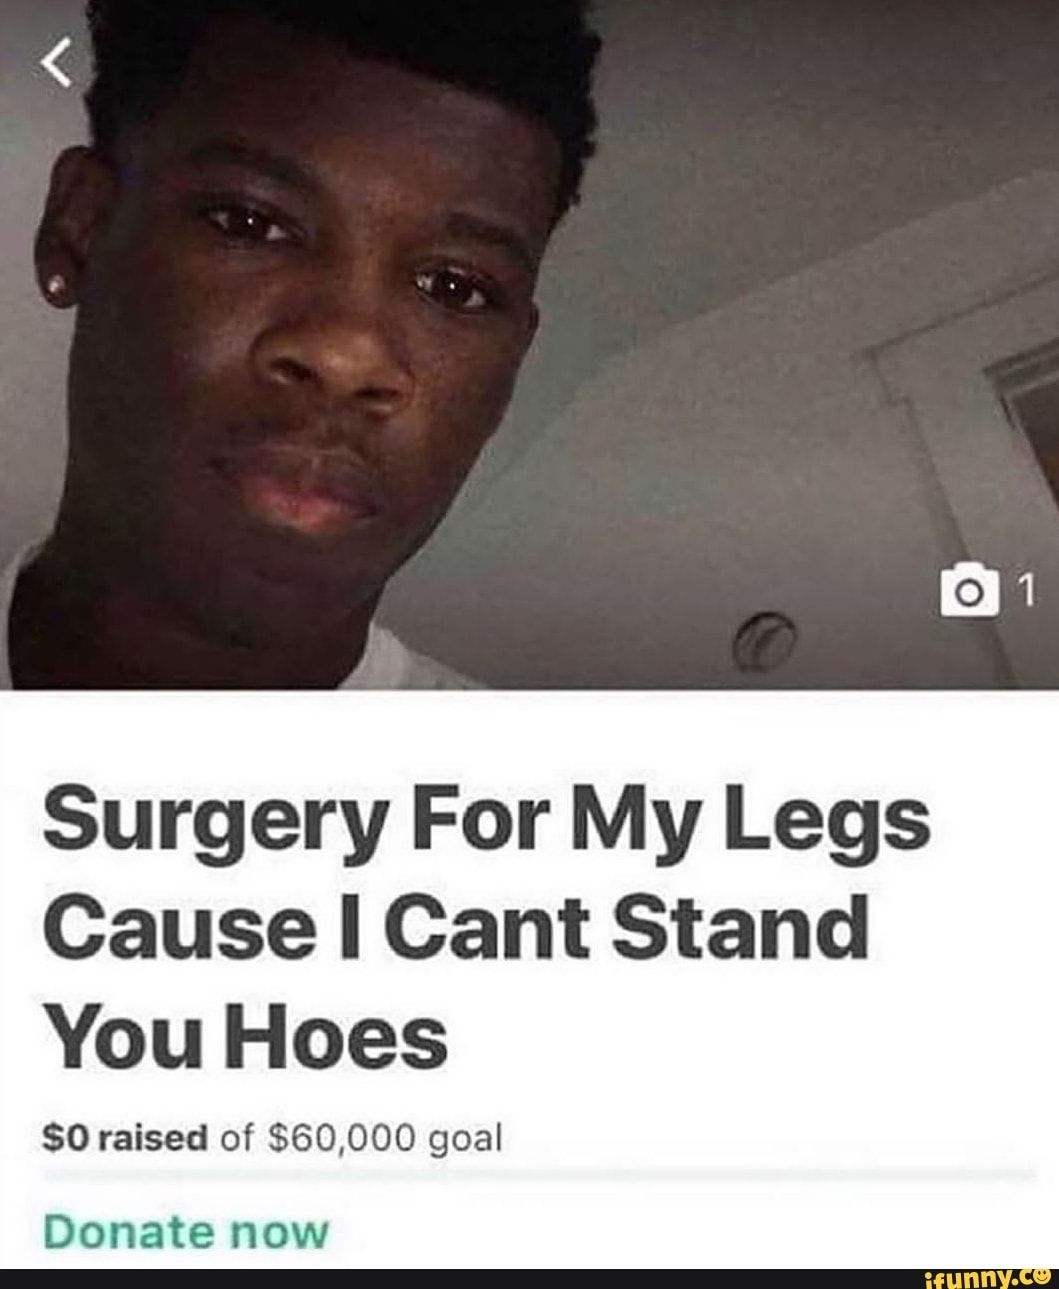 Surgery For My Legs Cause I Cant Stand You Hoes 0 Raised Of 60 000 Goal Ifunny Funny Motivation Silly Memes Human Interaction